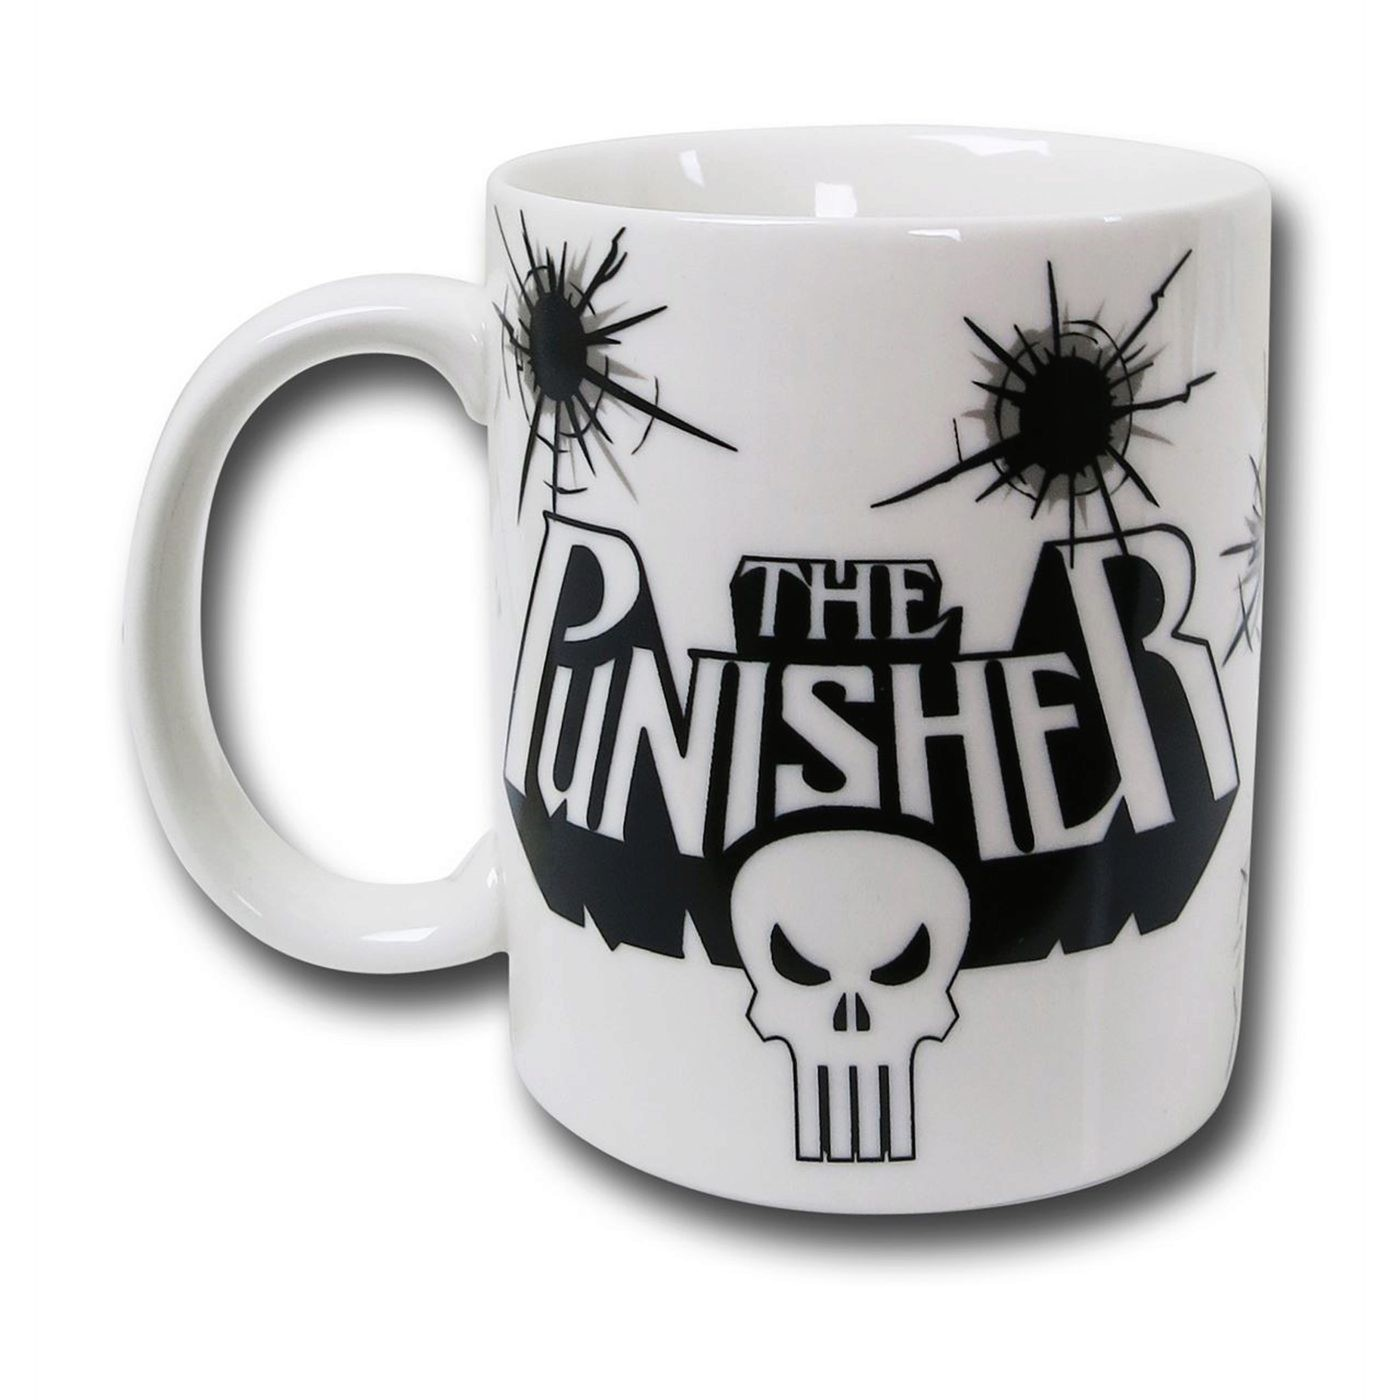 Punisher Symbol White 11.5 Mug